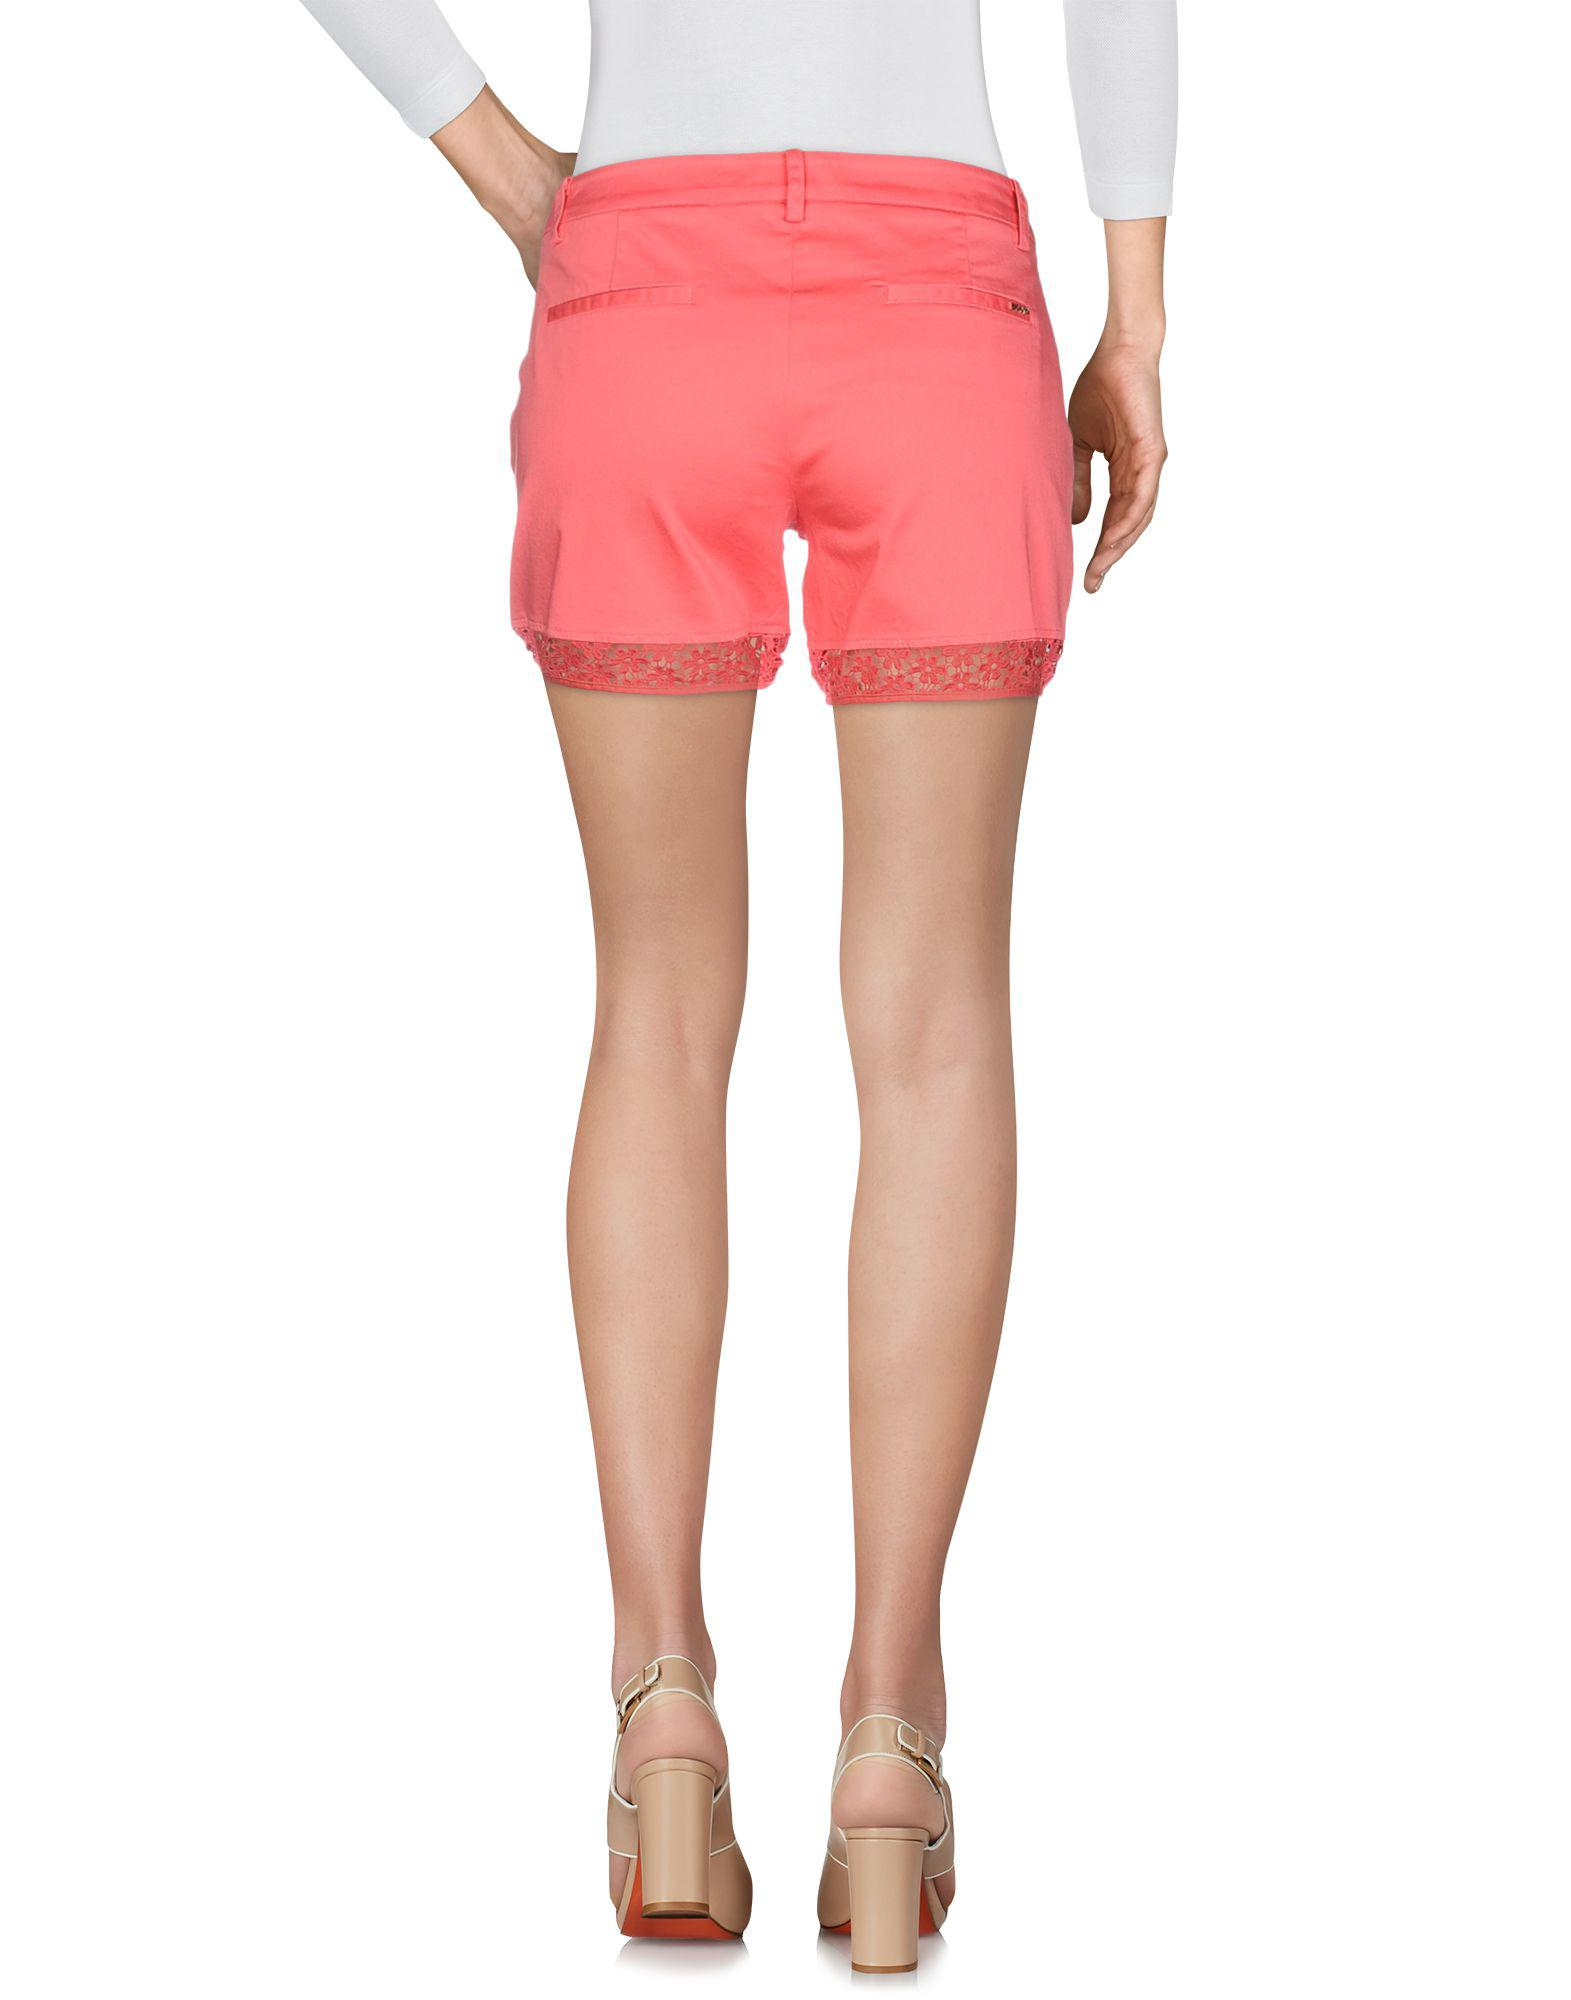 TROUSERS - Bermuda shorts LuckyLu Y7v34d